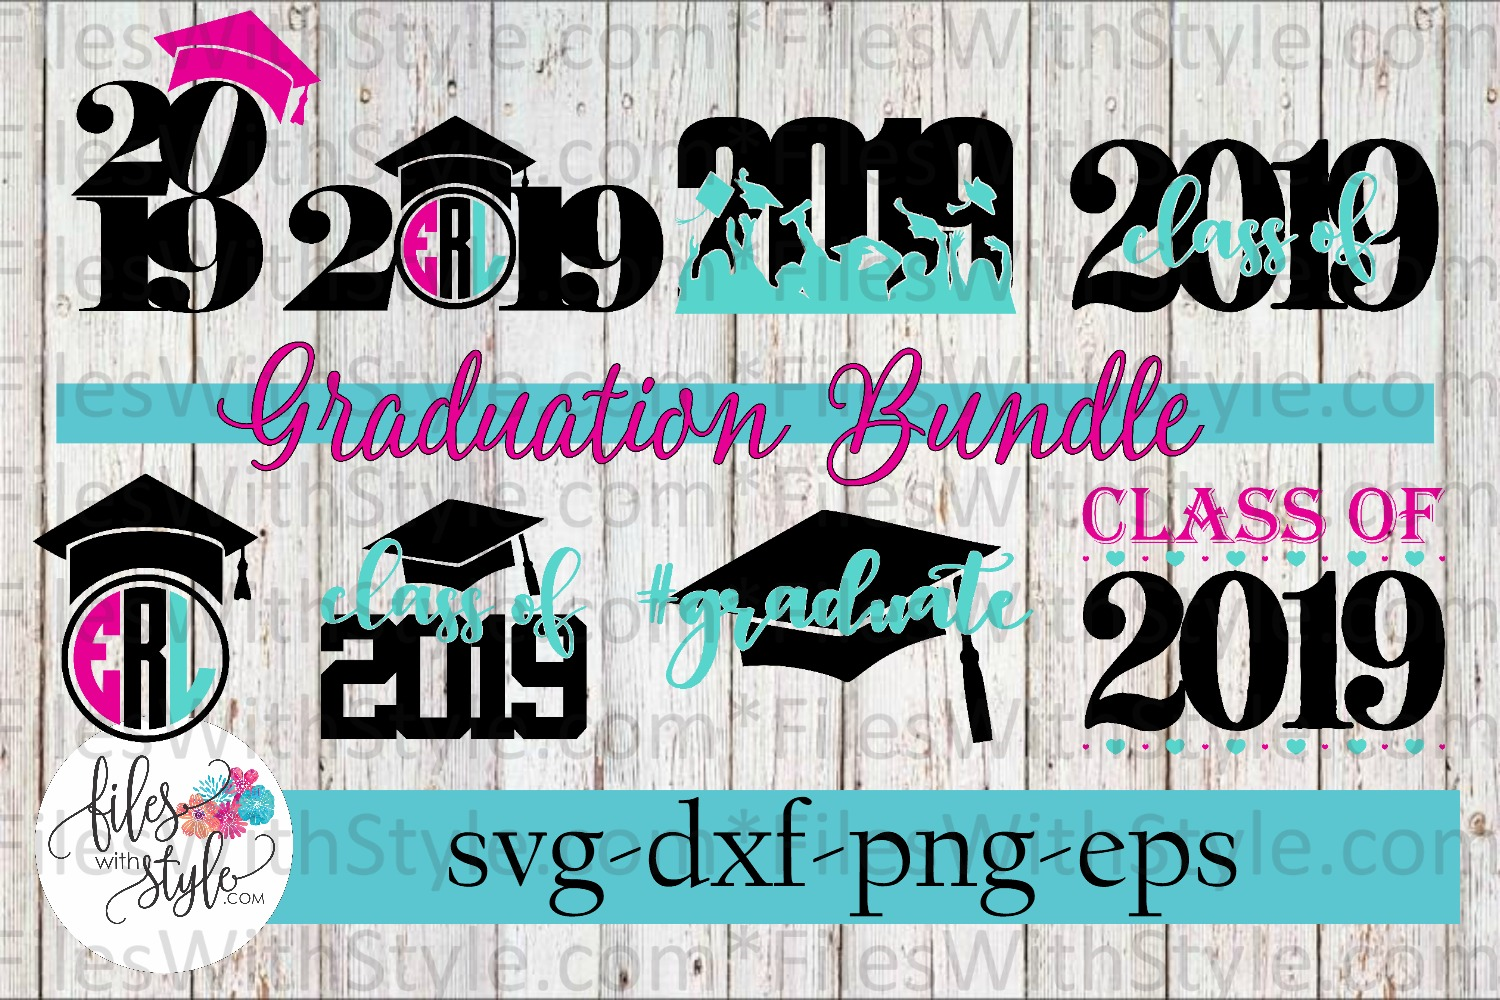 GRADUATION BUNDLE Class of 2019 Graduate SVG Cutting Files example image 1